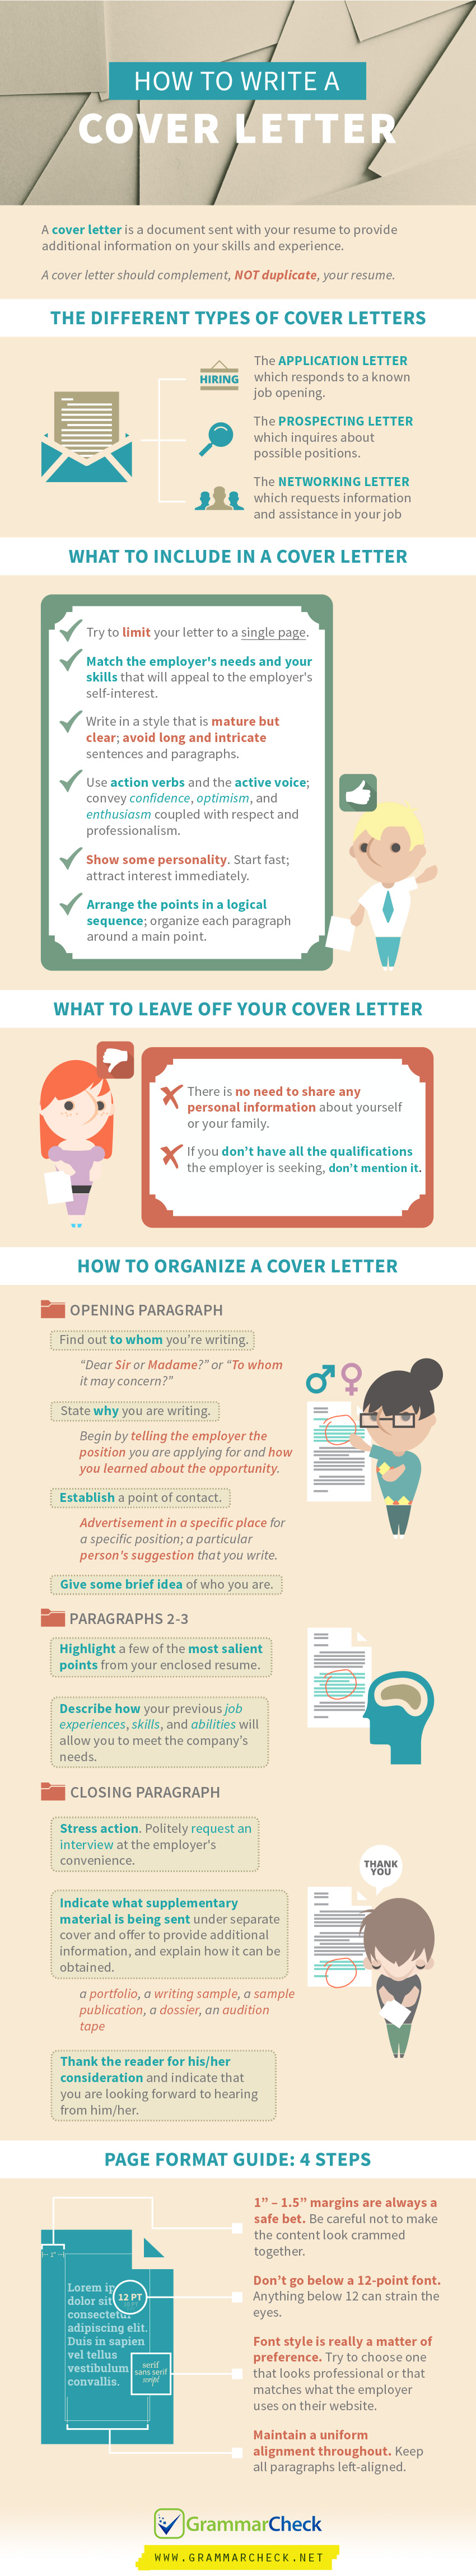 How To Write A Cover Letter – Step By Step